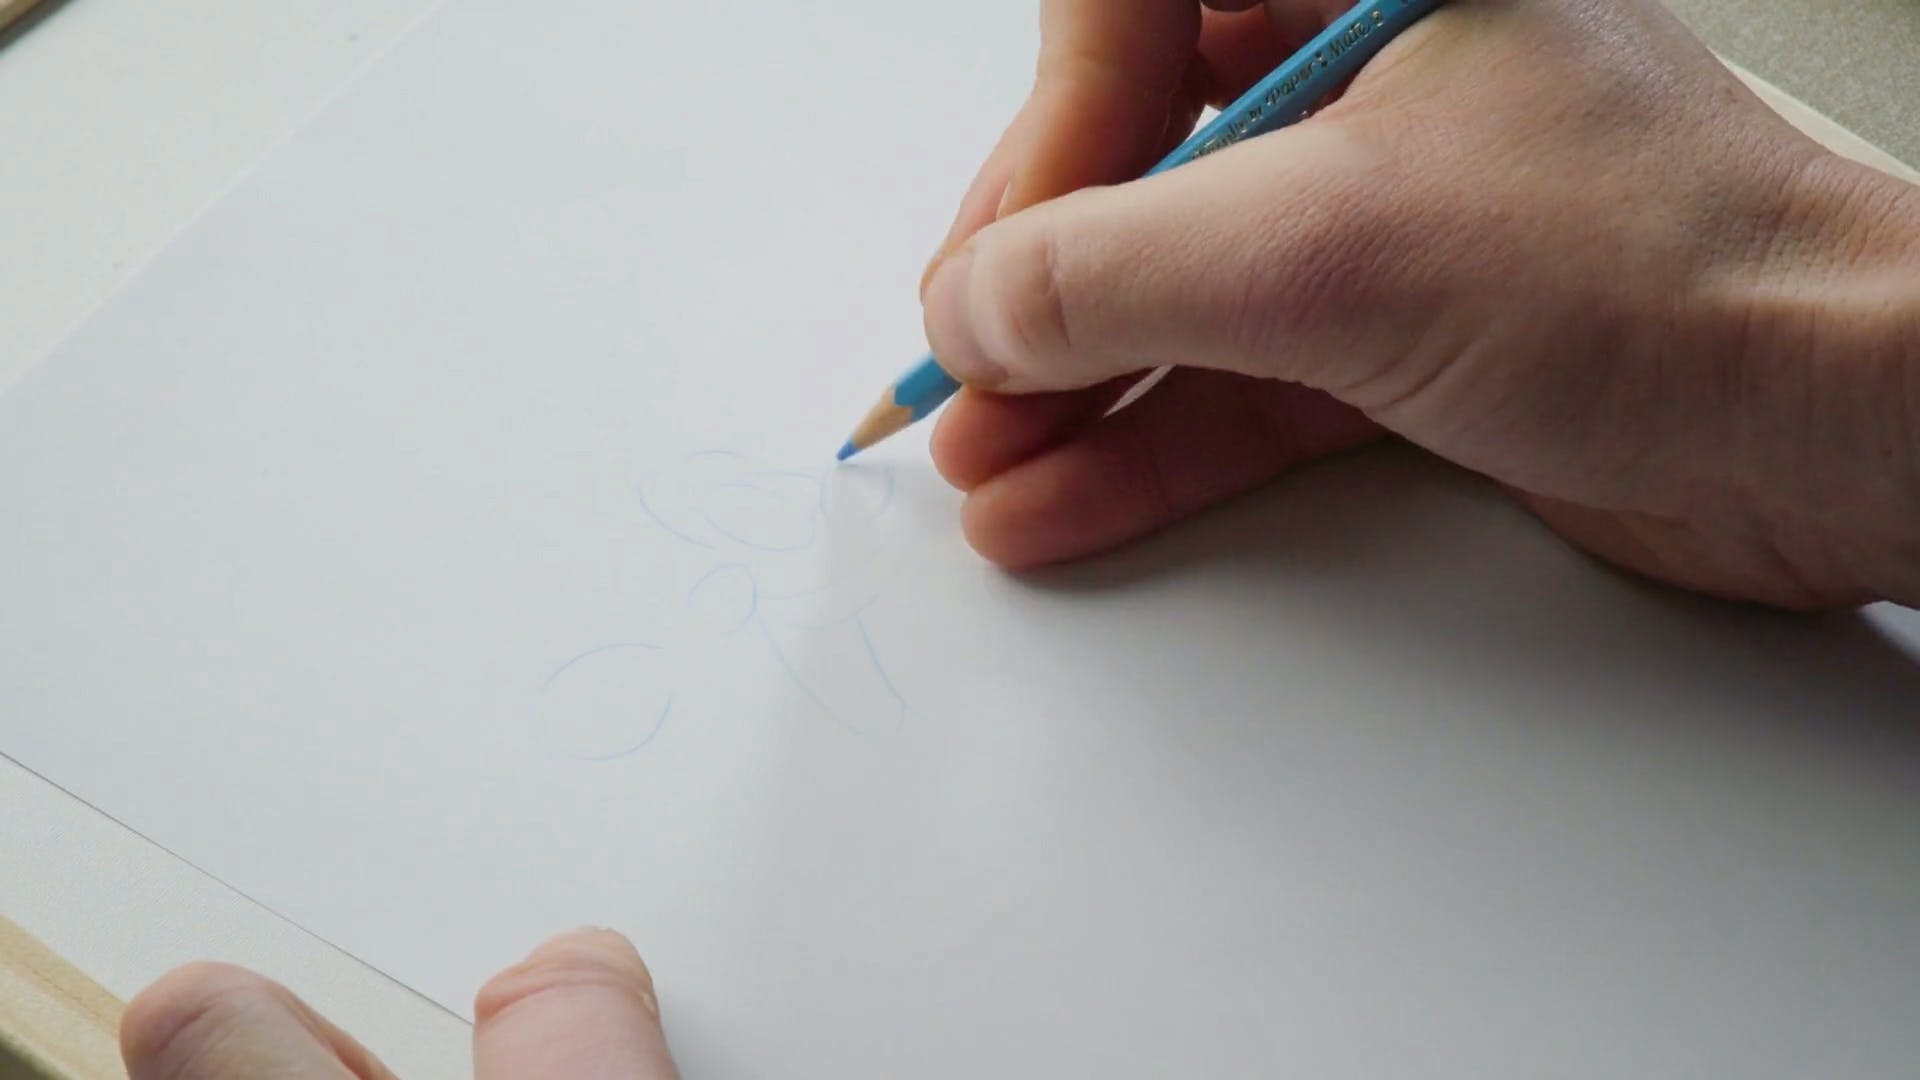 Chris McGhie drawing Ball Boy with a blue pencil